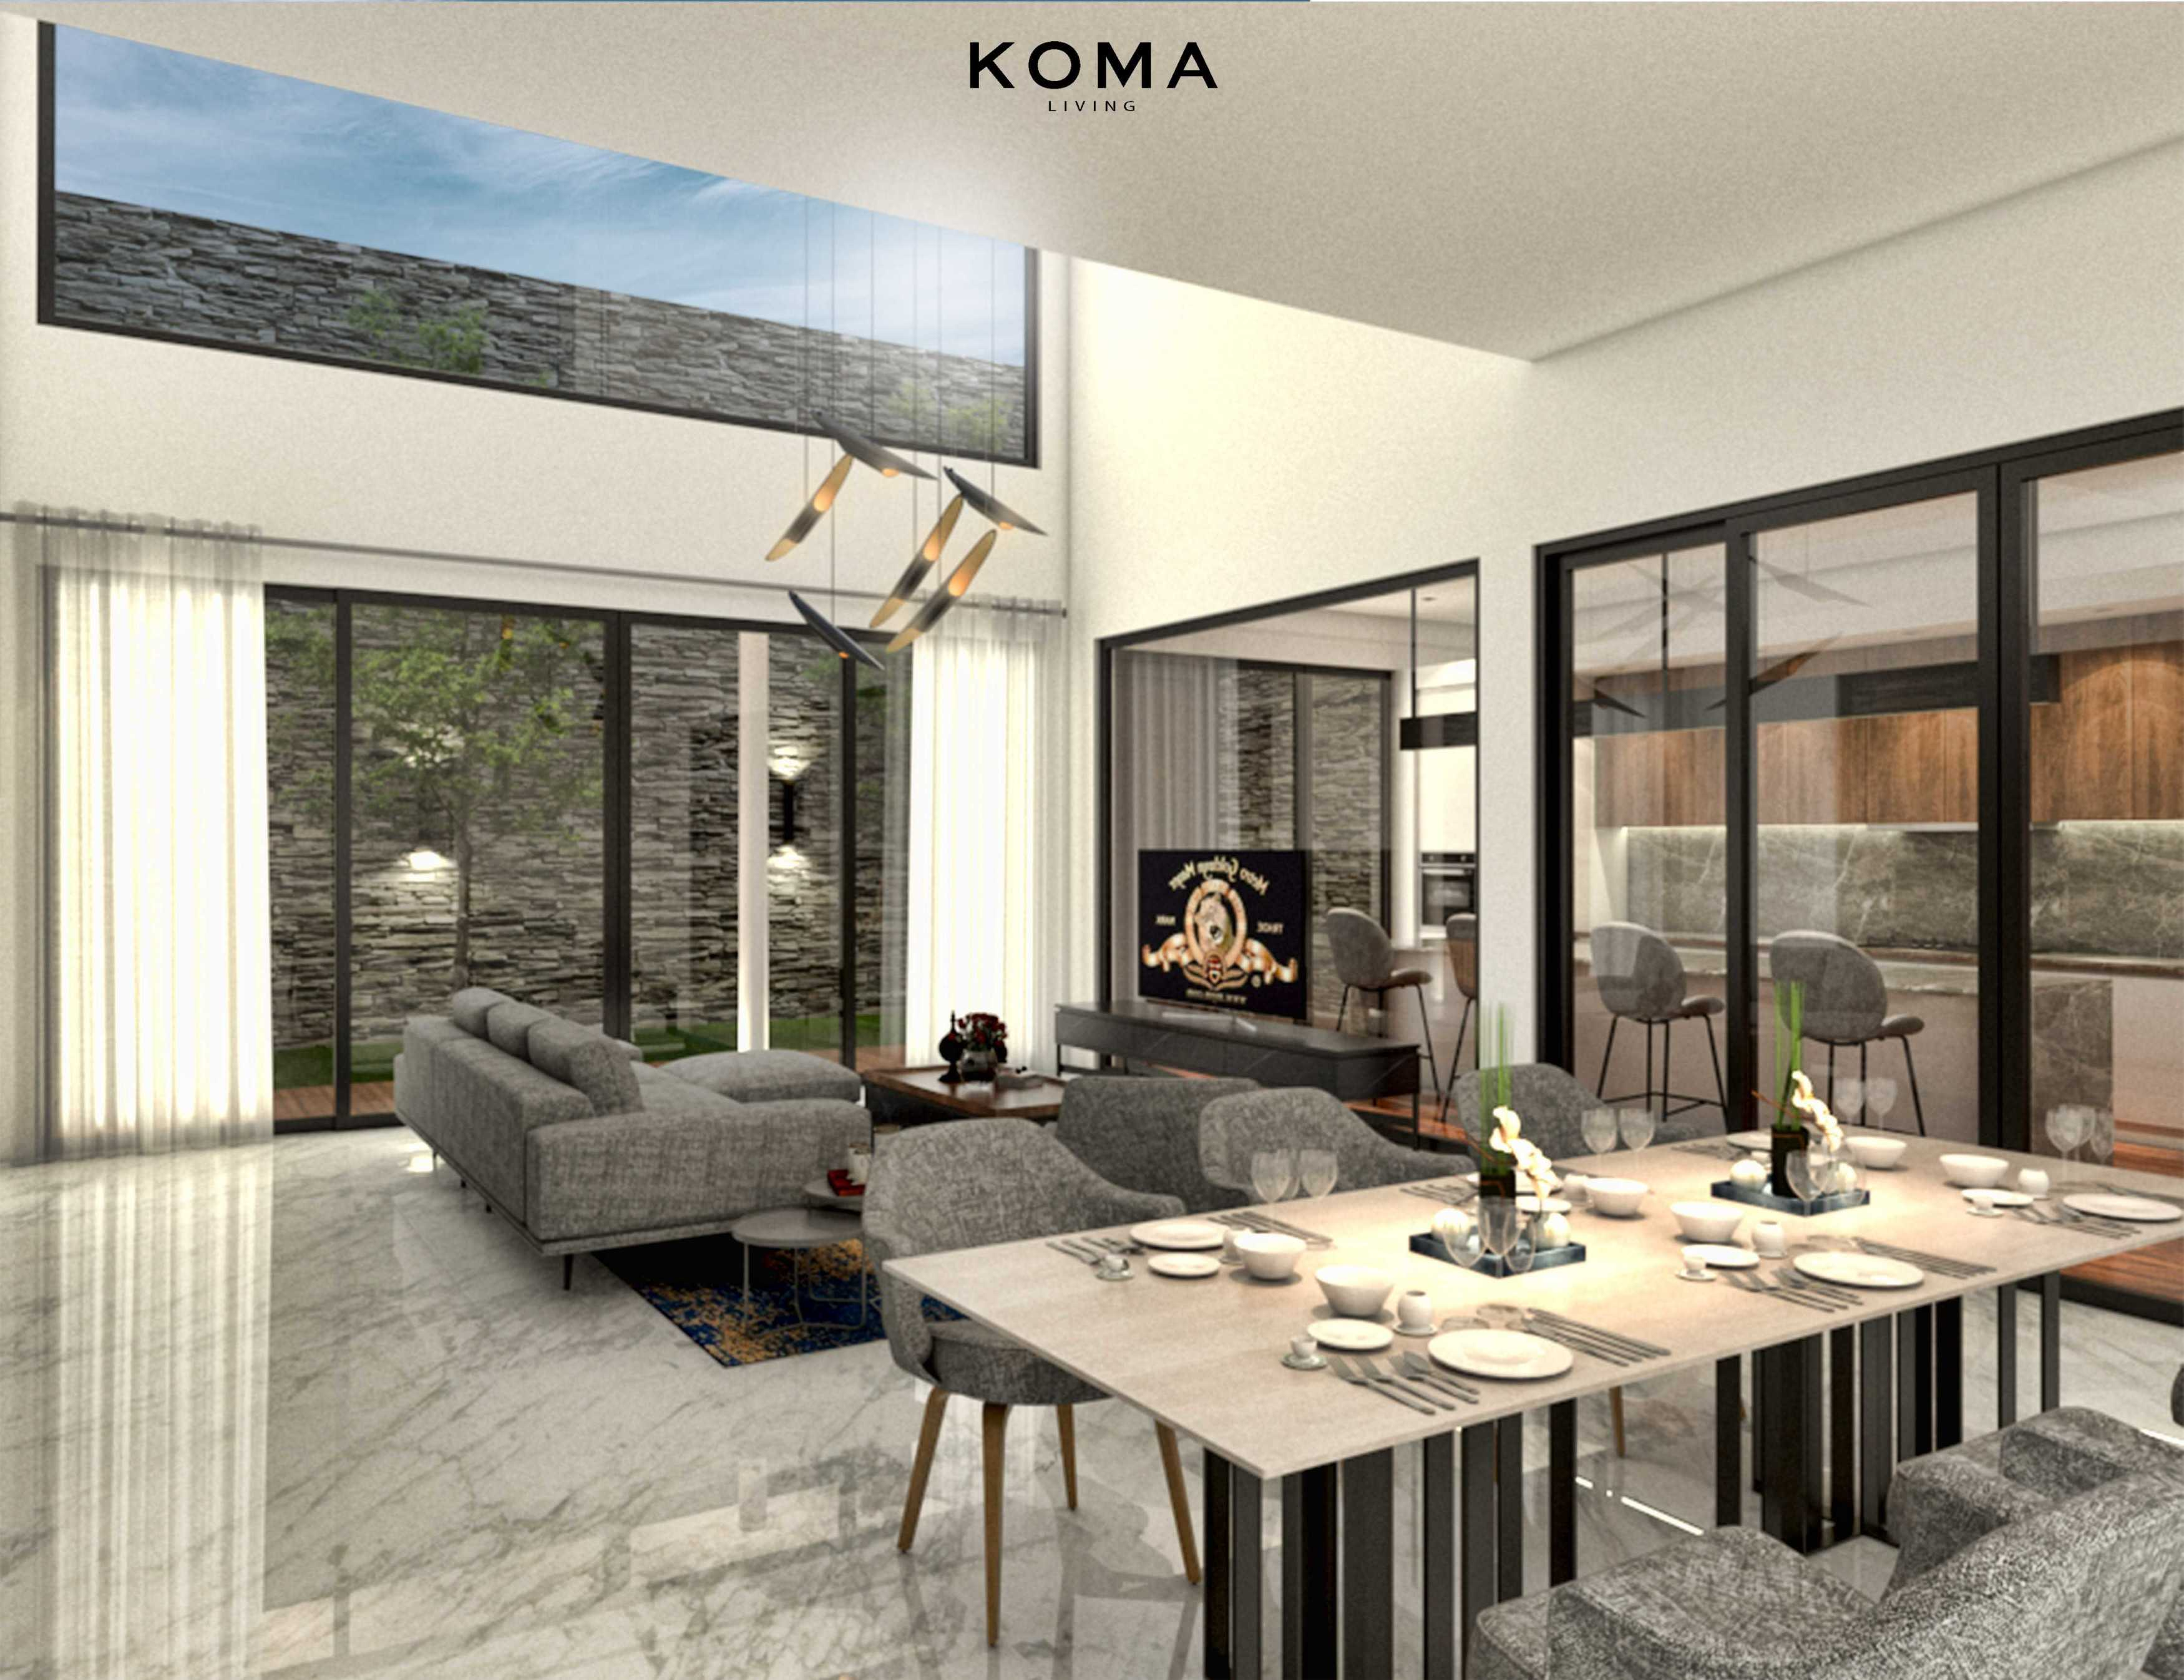 Koma Bs House Jl. Jalur Sutera No.17, Kunciran, Pinang, Kota Tangerang, Banten 15143, Indonesia Jl. Jalur Sutera No.17, Kunciran, Pinang, Kota Tangerang, Banten 15143, Indonesia Koma-Bs-House Contemporary <P>Bs House Located At Alam Sutera, Tangerang, Indonesia, A Renovation From Row House Built By Alam Sutera Realty And Redesigned By Koma Architect, The Architectural Concept For The House Is Elegant And Sleek Design&nbsp;with Rich Natural Material Combined With Taking&nbsp;full Advantage Of Relating To Its Natural Surroundings, Make&nbsp;this House Have A&nbsp;strong Relationship Between The House And Nature.</p> 70231